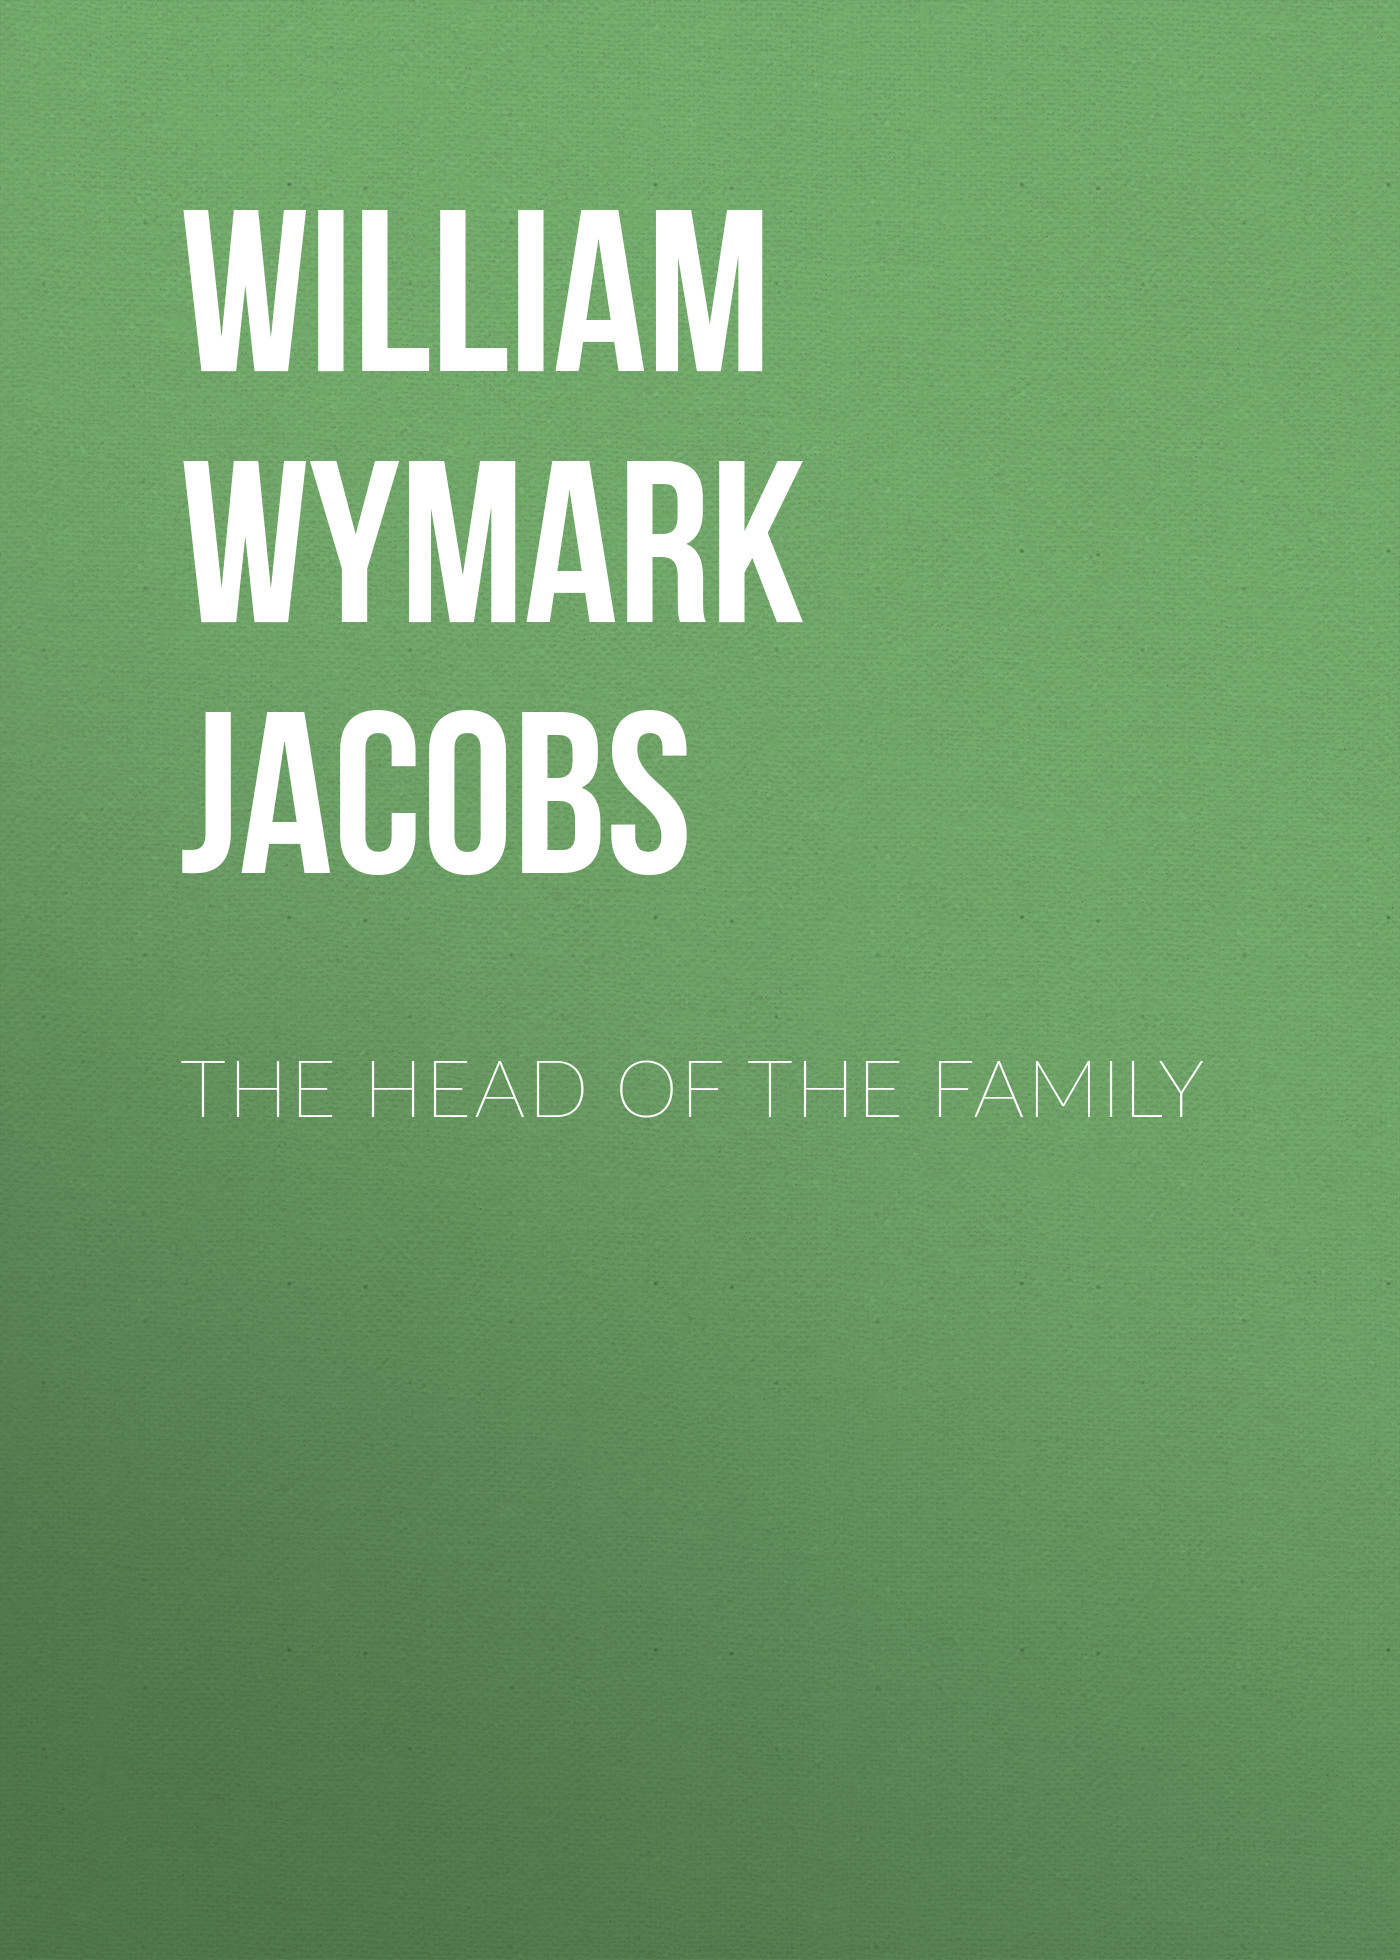 лучшая цена William Wymark Jacobs The Head of the Family